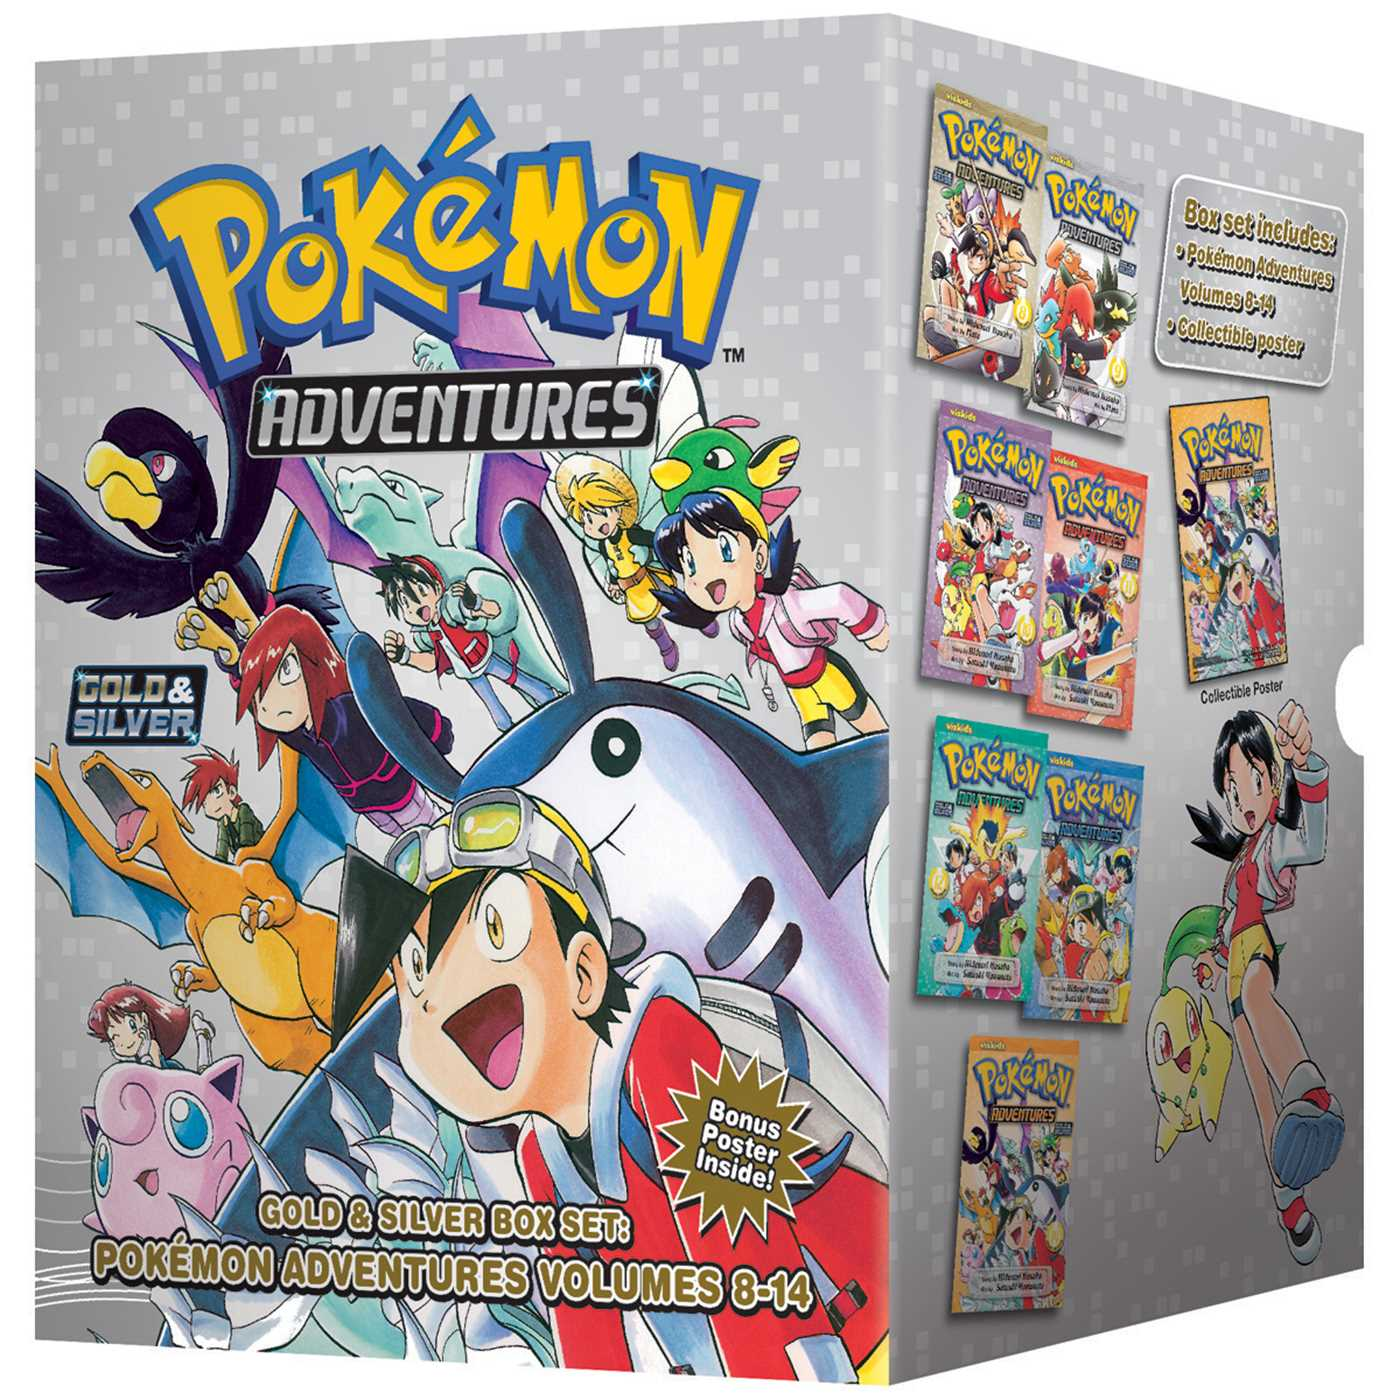 Pokemon adventures gold silver box set set includes vol 8 14 9781421550077 hr